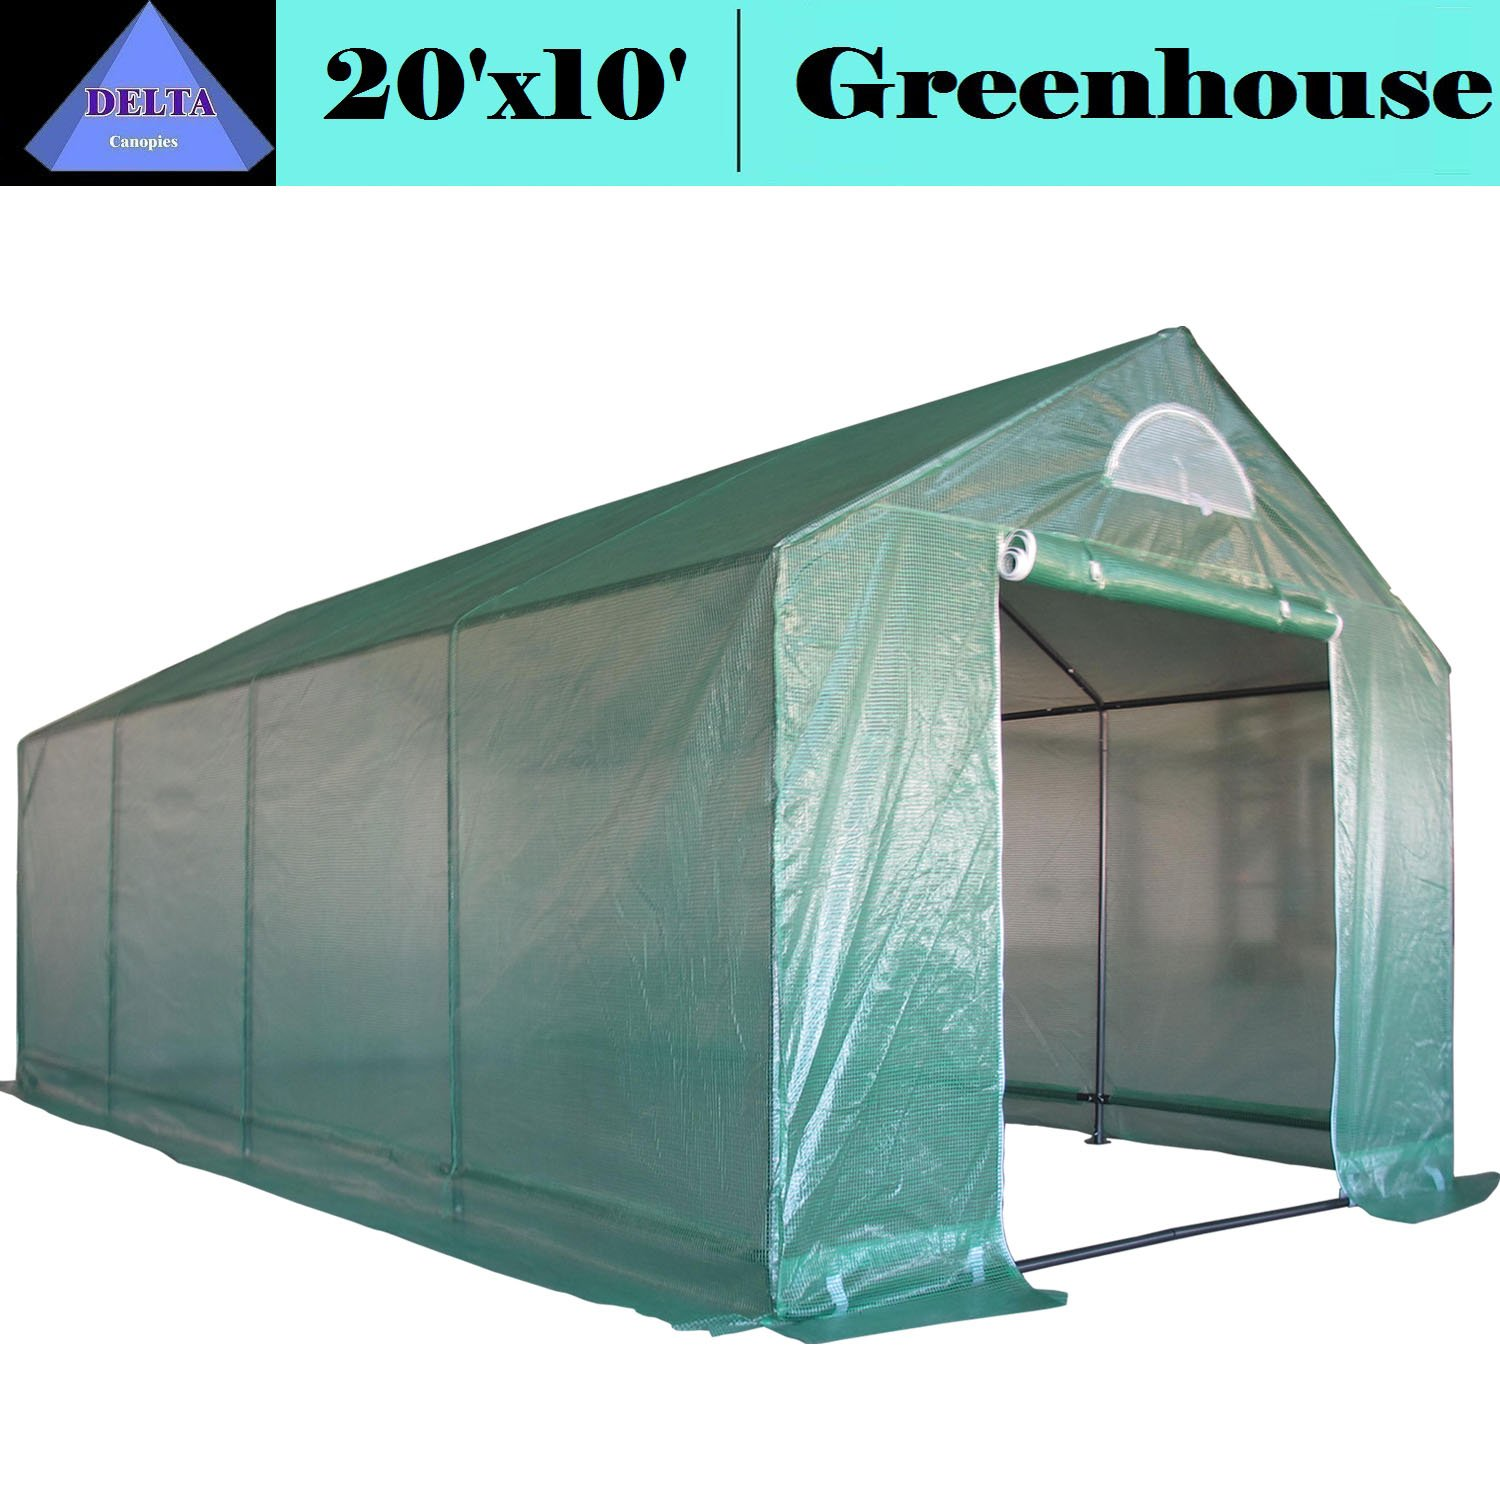 DELTA Canopies Greenhouse 20'x10' Triangle Top - Large Heavy Duty Green House Walk in Hothouse - 140 lbs By